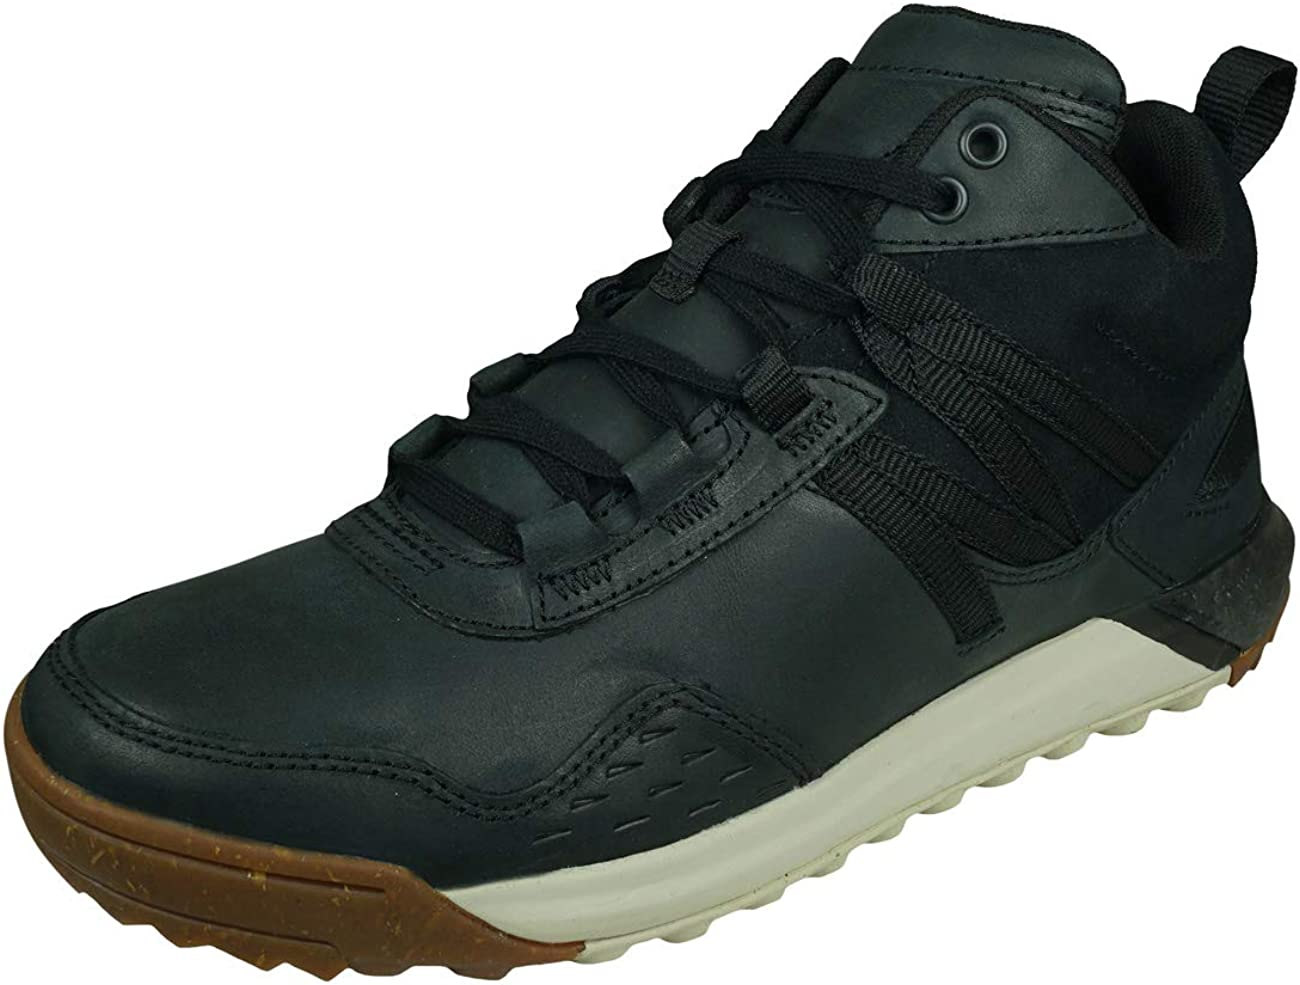 Merrell High quality Max 89% OFF Men's Indeway Mid Boot Hiking